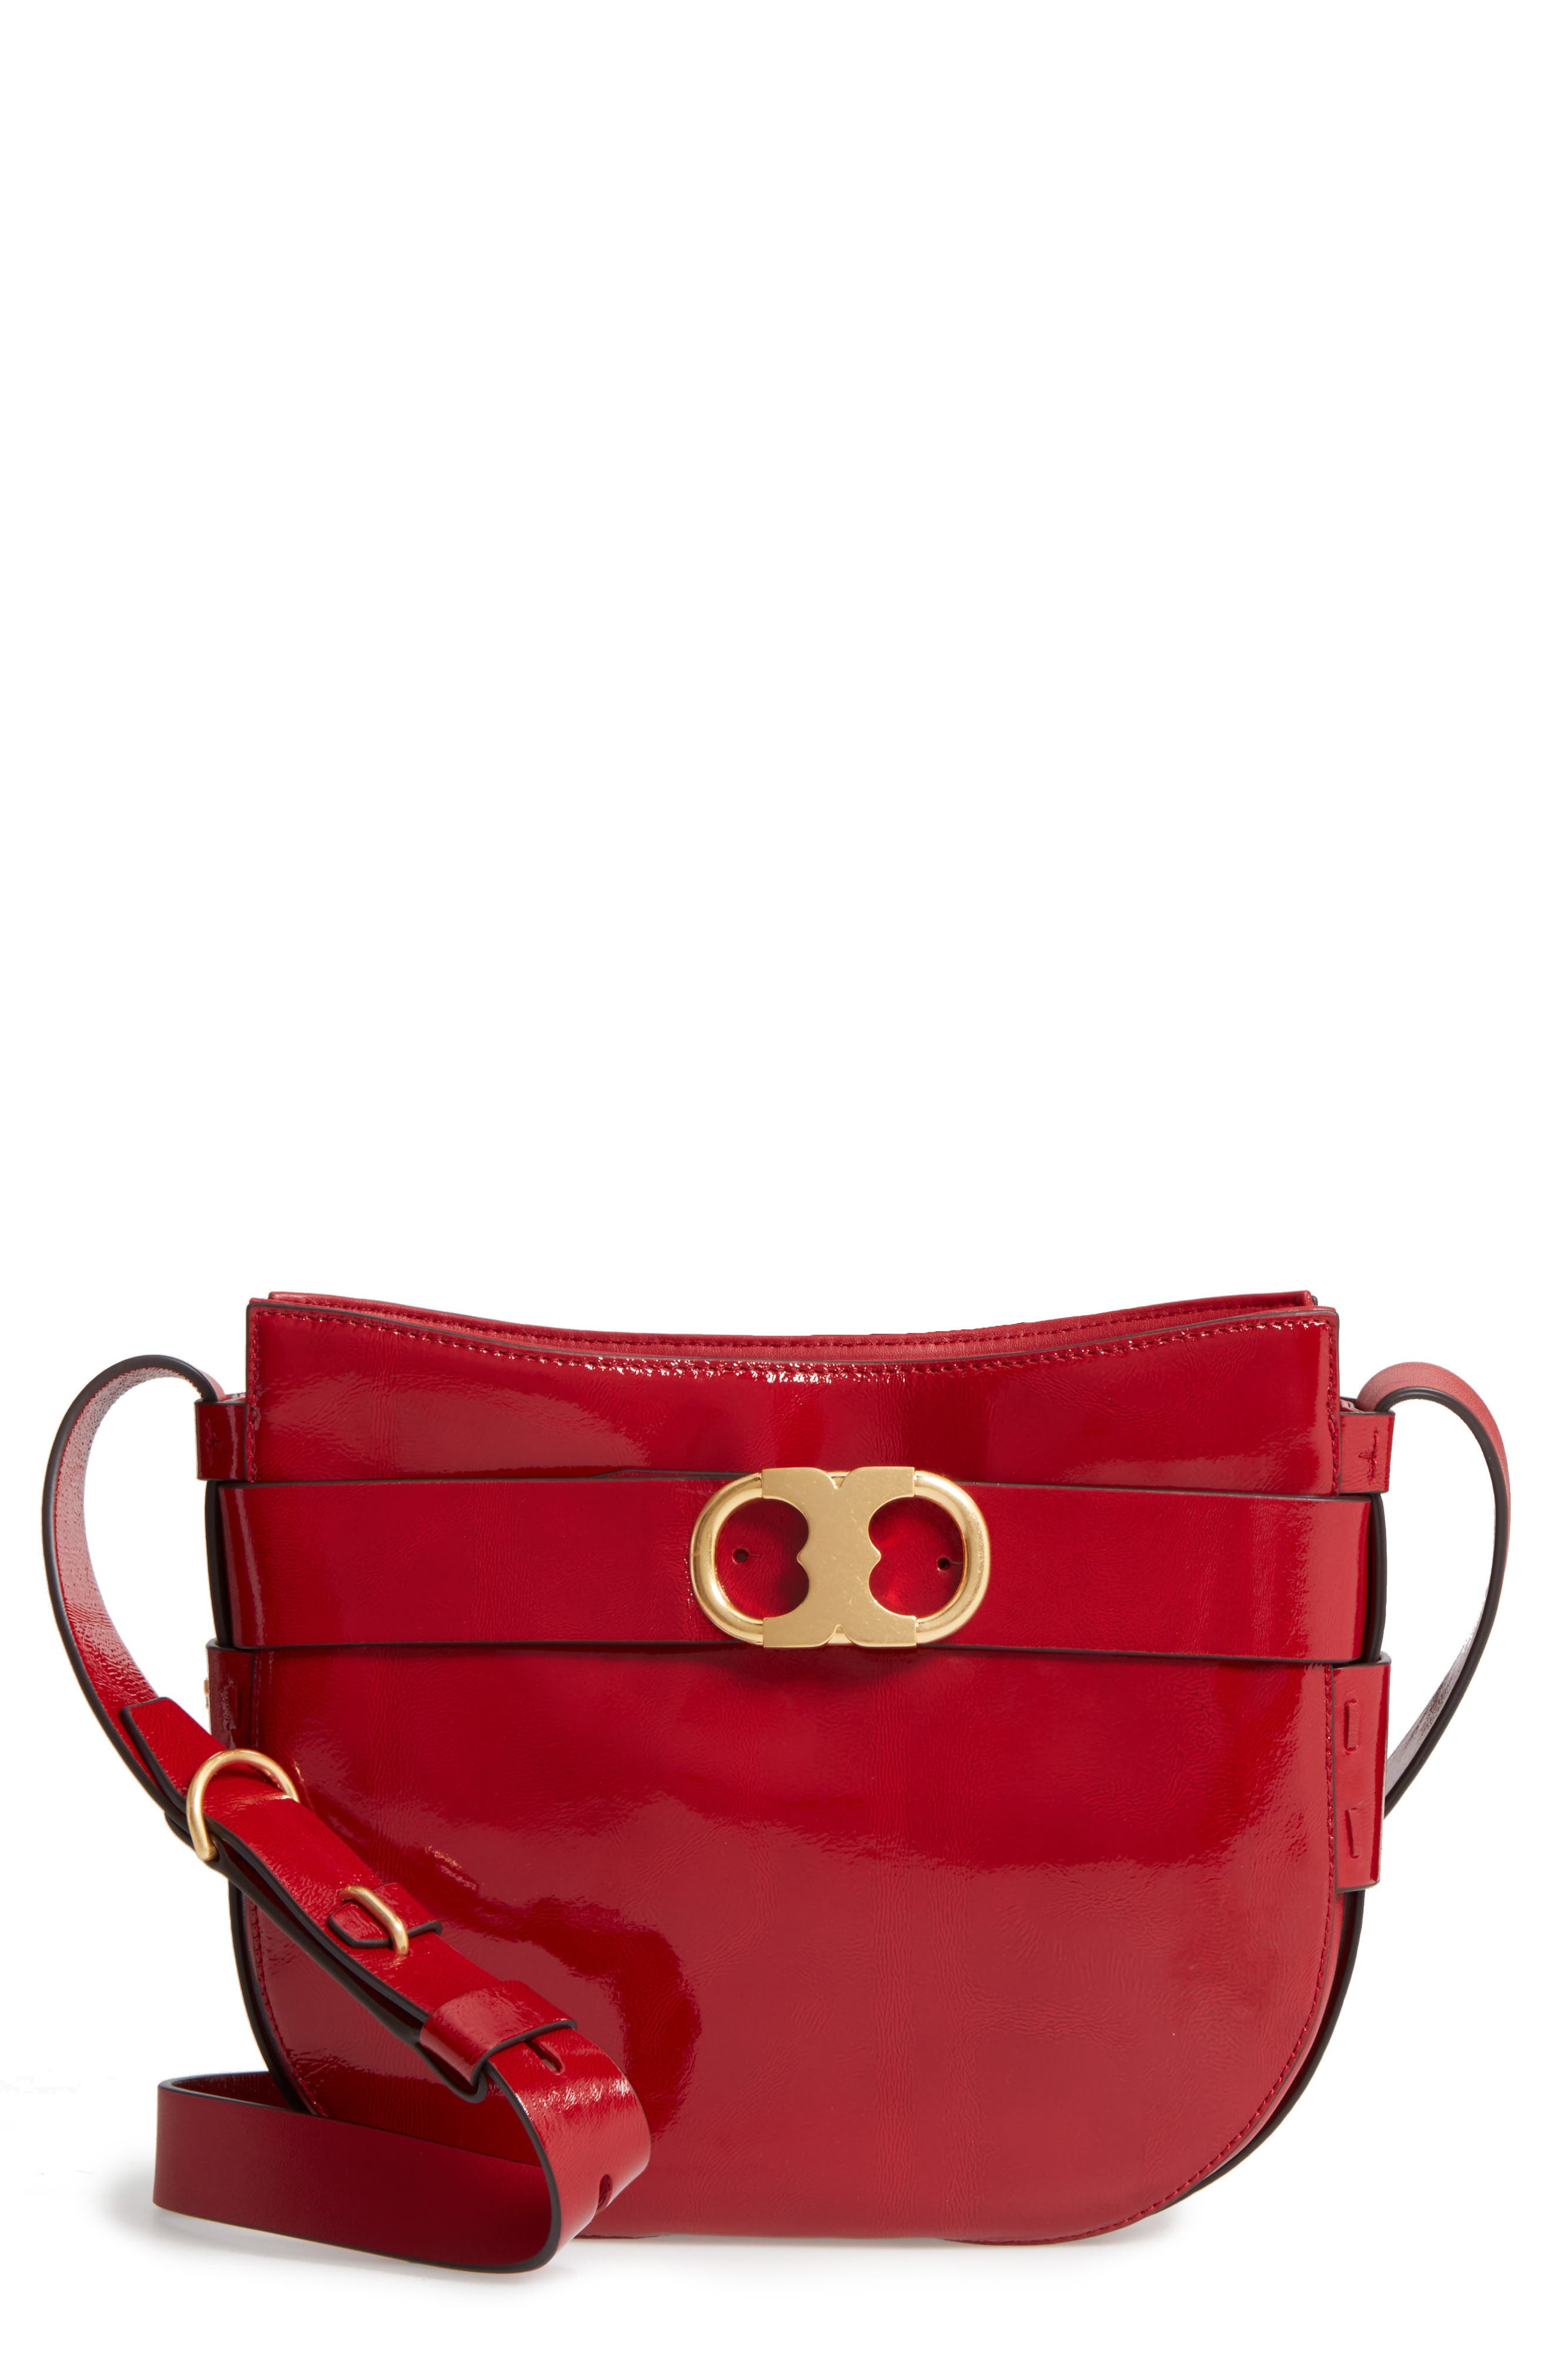 Alternate Image 1 Selected - Tory Burch Gemini Link Patent Leather Crossbody Bag